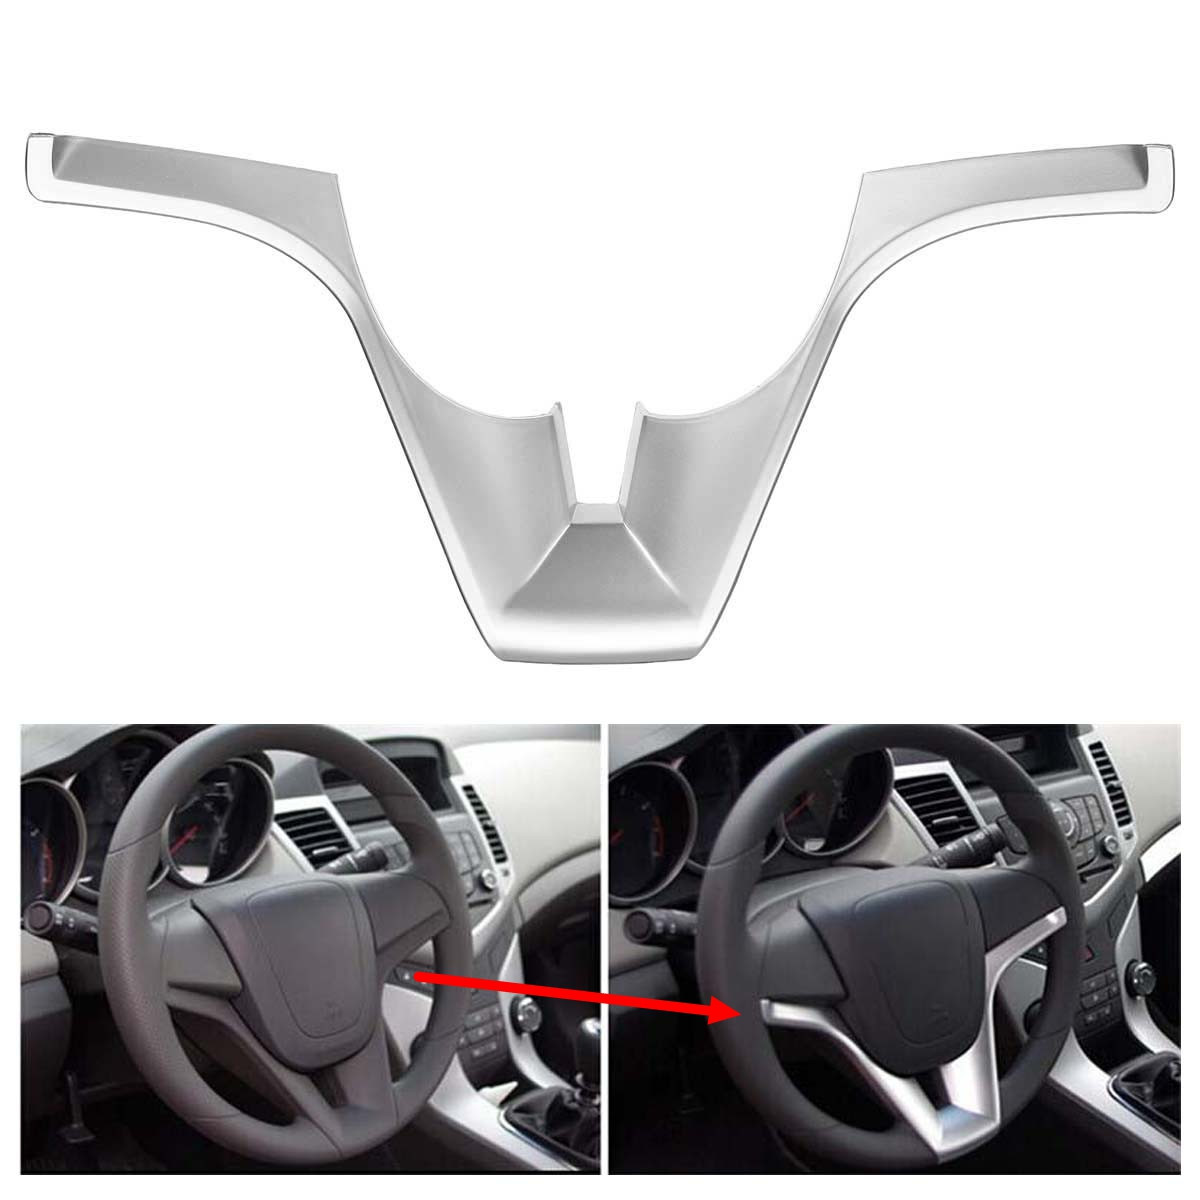 Car Steering Wheel Trim Cover Sticker Chrome Interior Sticker For Chevrolet For Cruze Sedan Hatchback 2011 2012 2013 2014